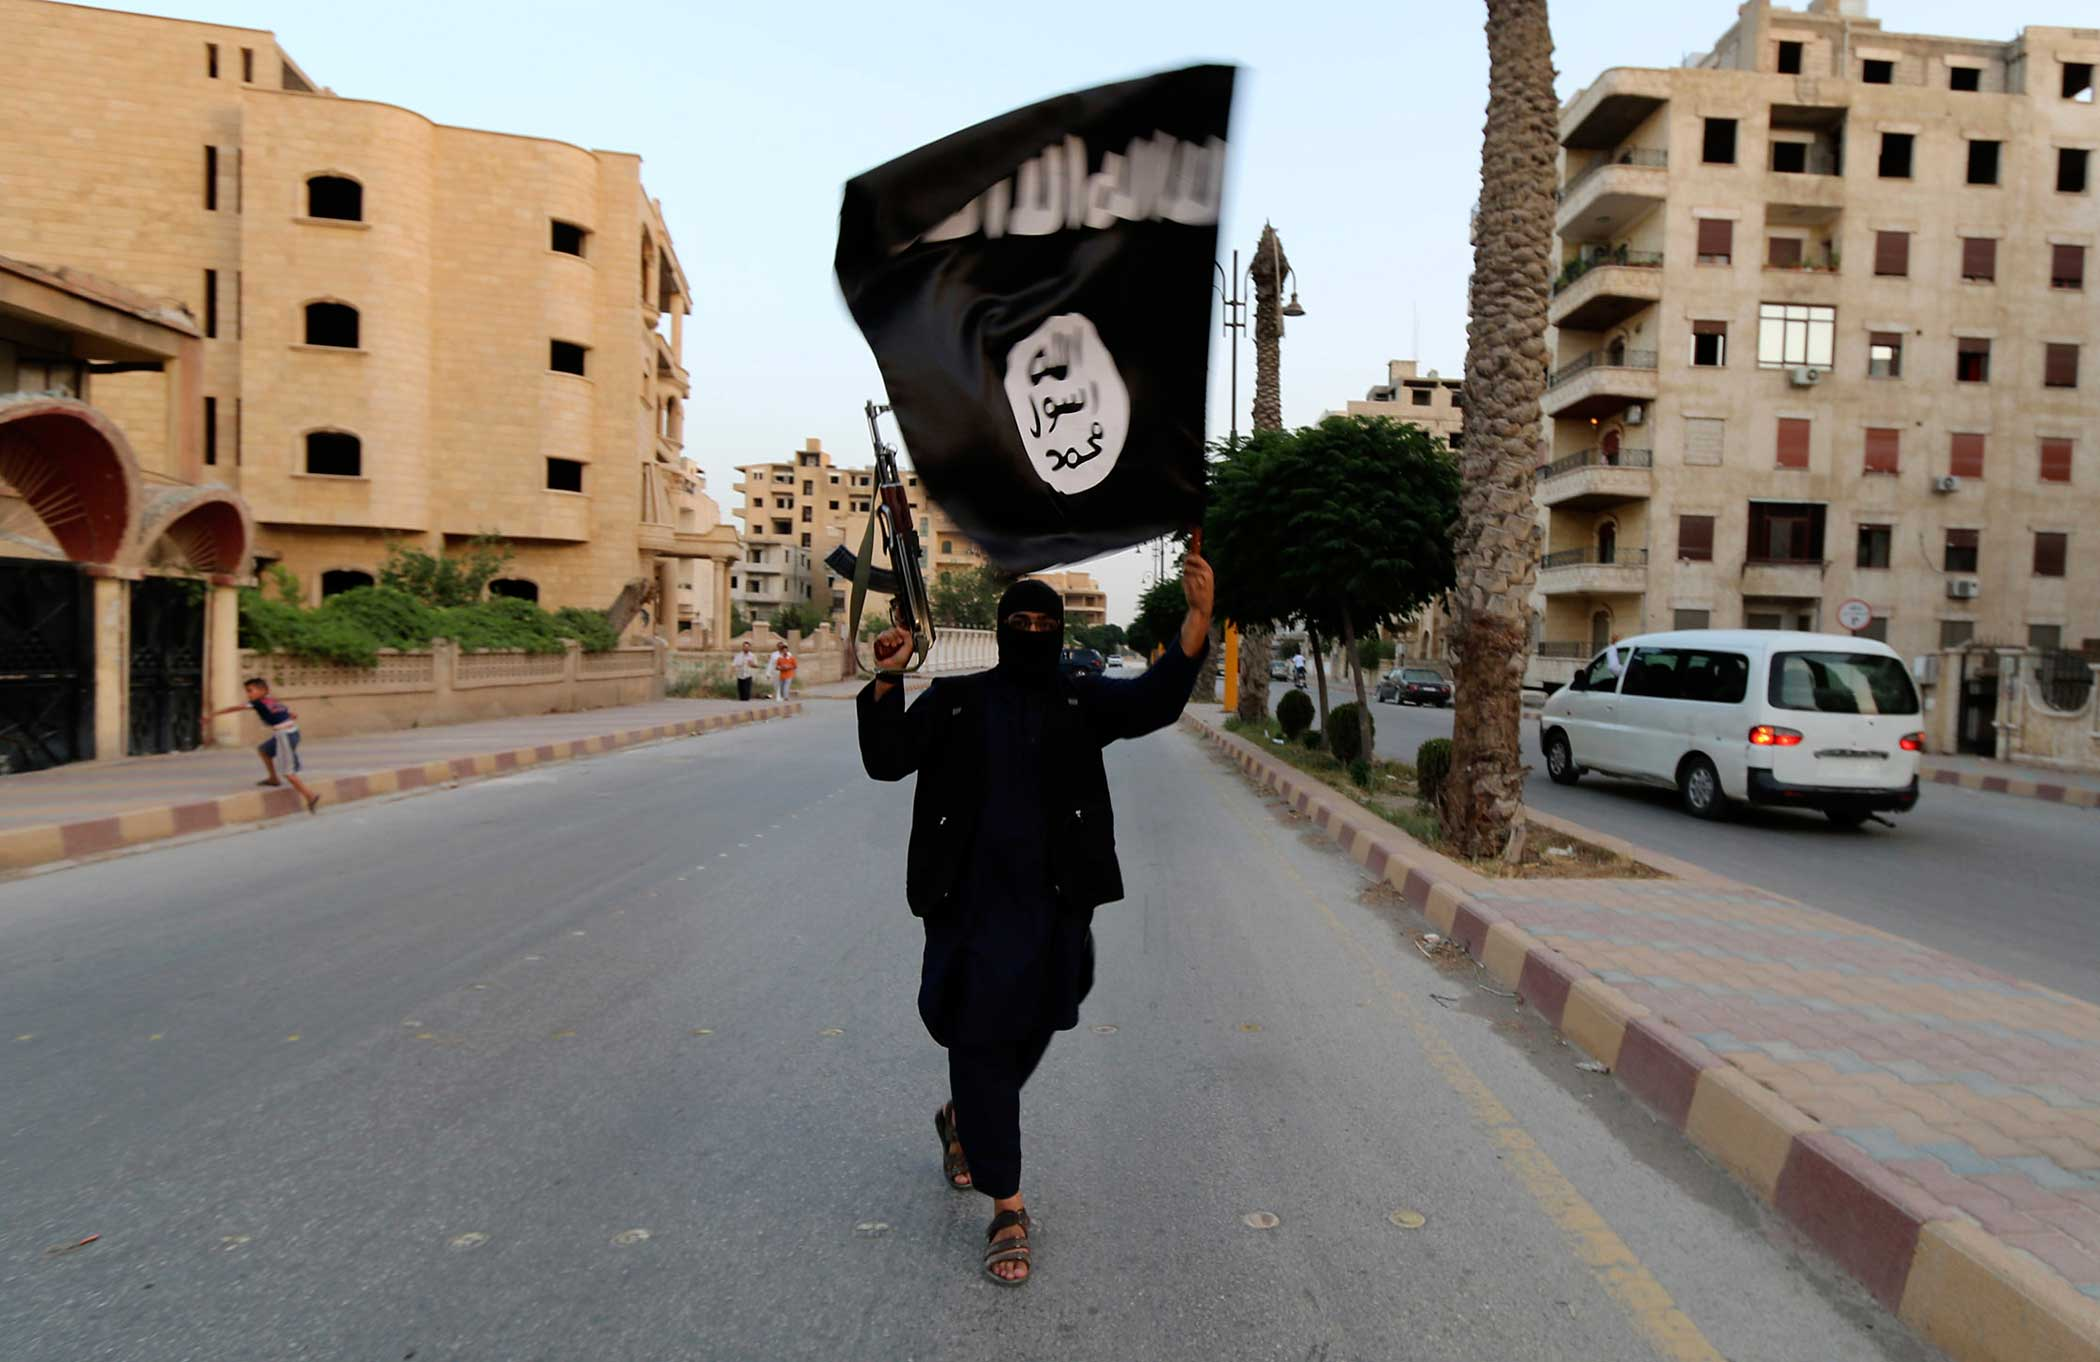 An Islamic State of Iraq and Syria waves an ISIS flag in Raqqa, Syria, on June 29, 2014